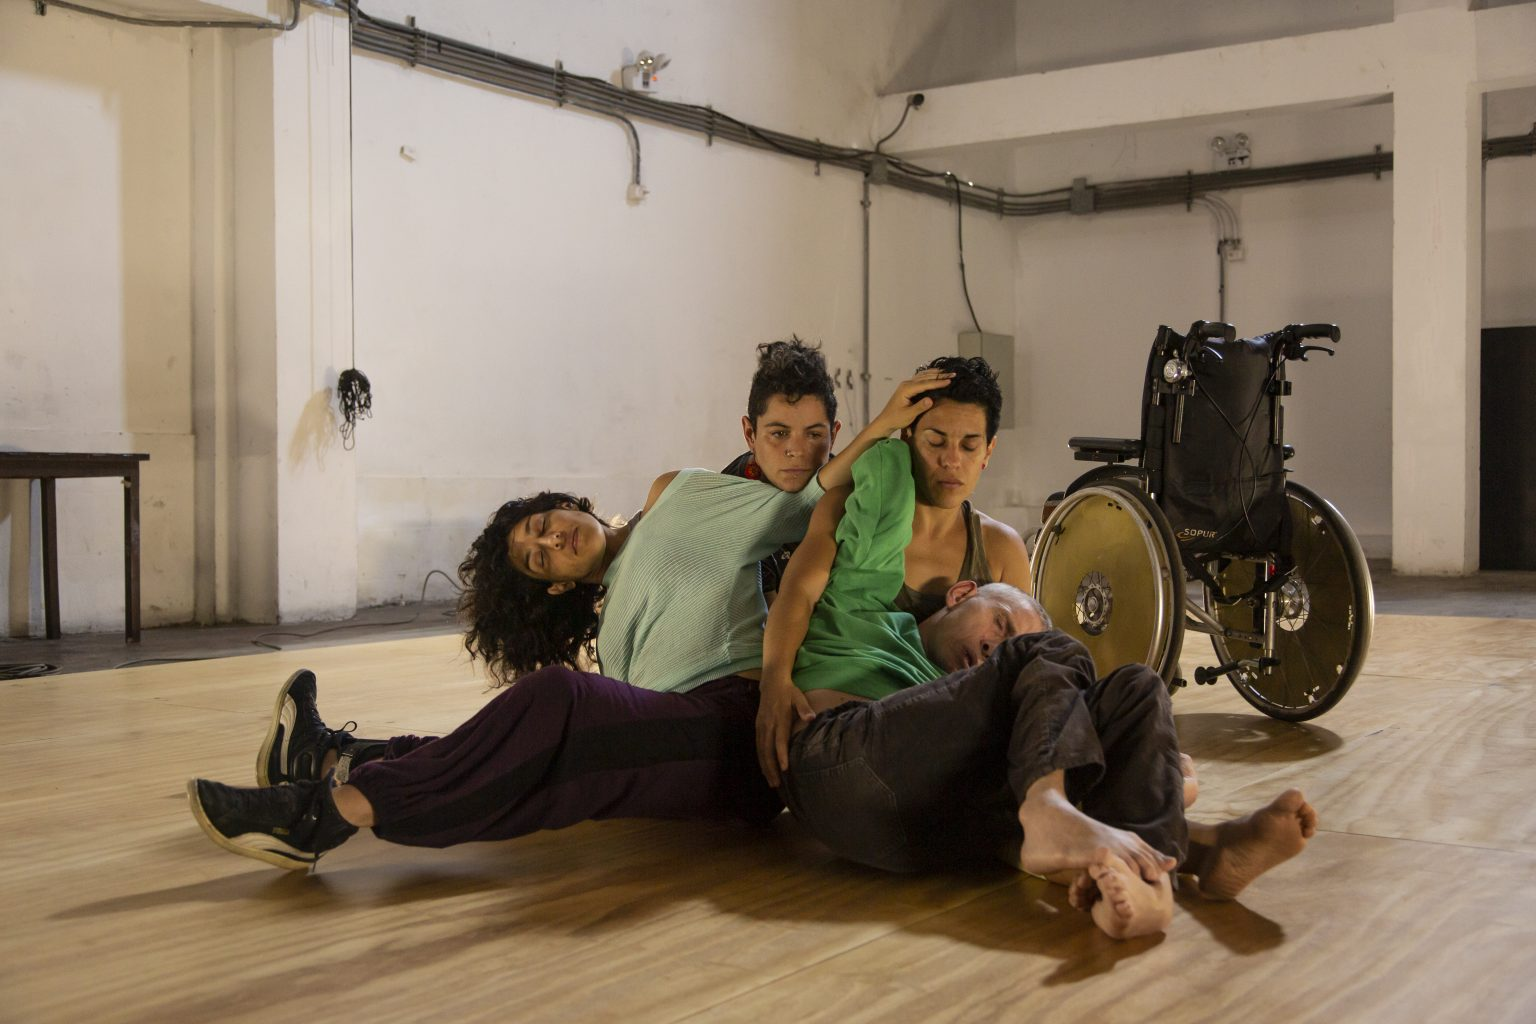 A photo of four dancers seated in a huddle on the floor of a bare studio with a wooden floor. They rest their heads and arms on each other, with eyes closed and bodies entwined. A wheelchair sits empty behind them.